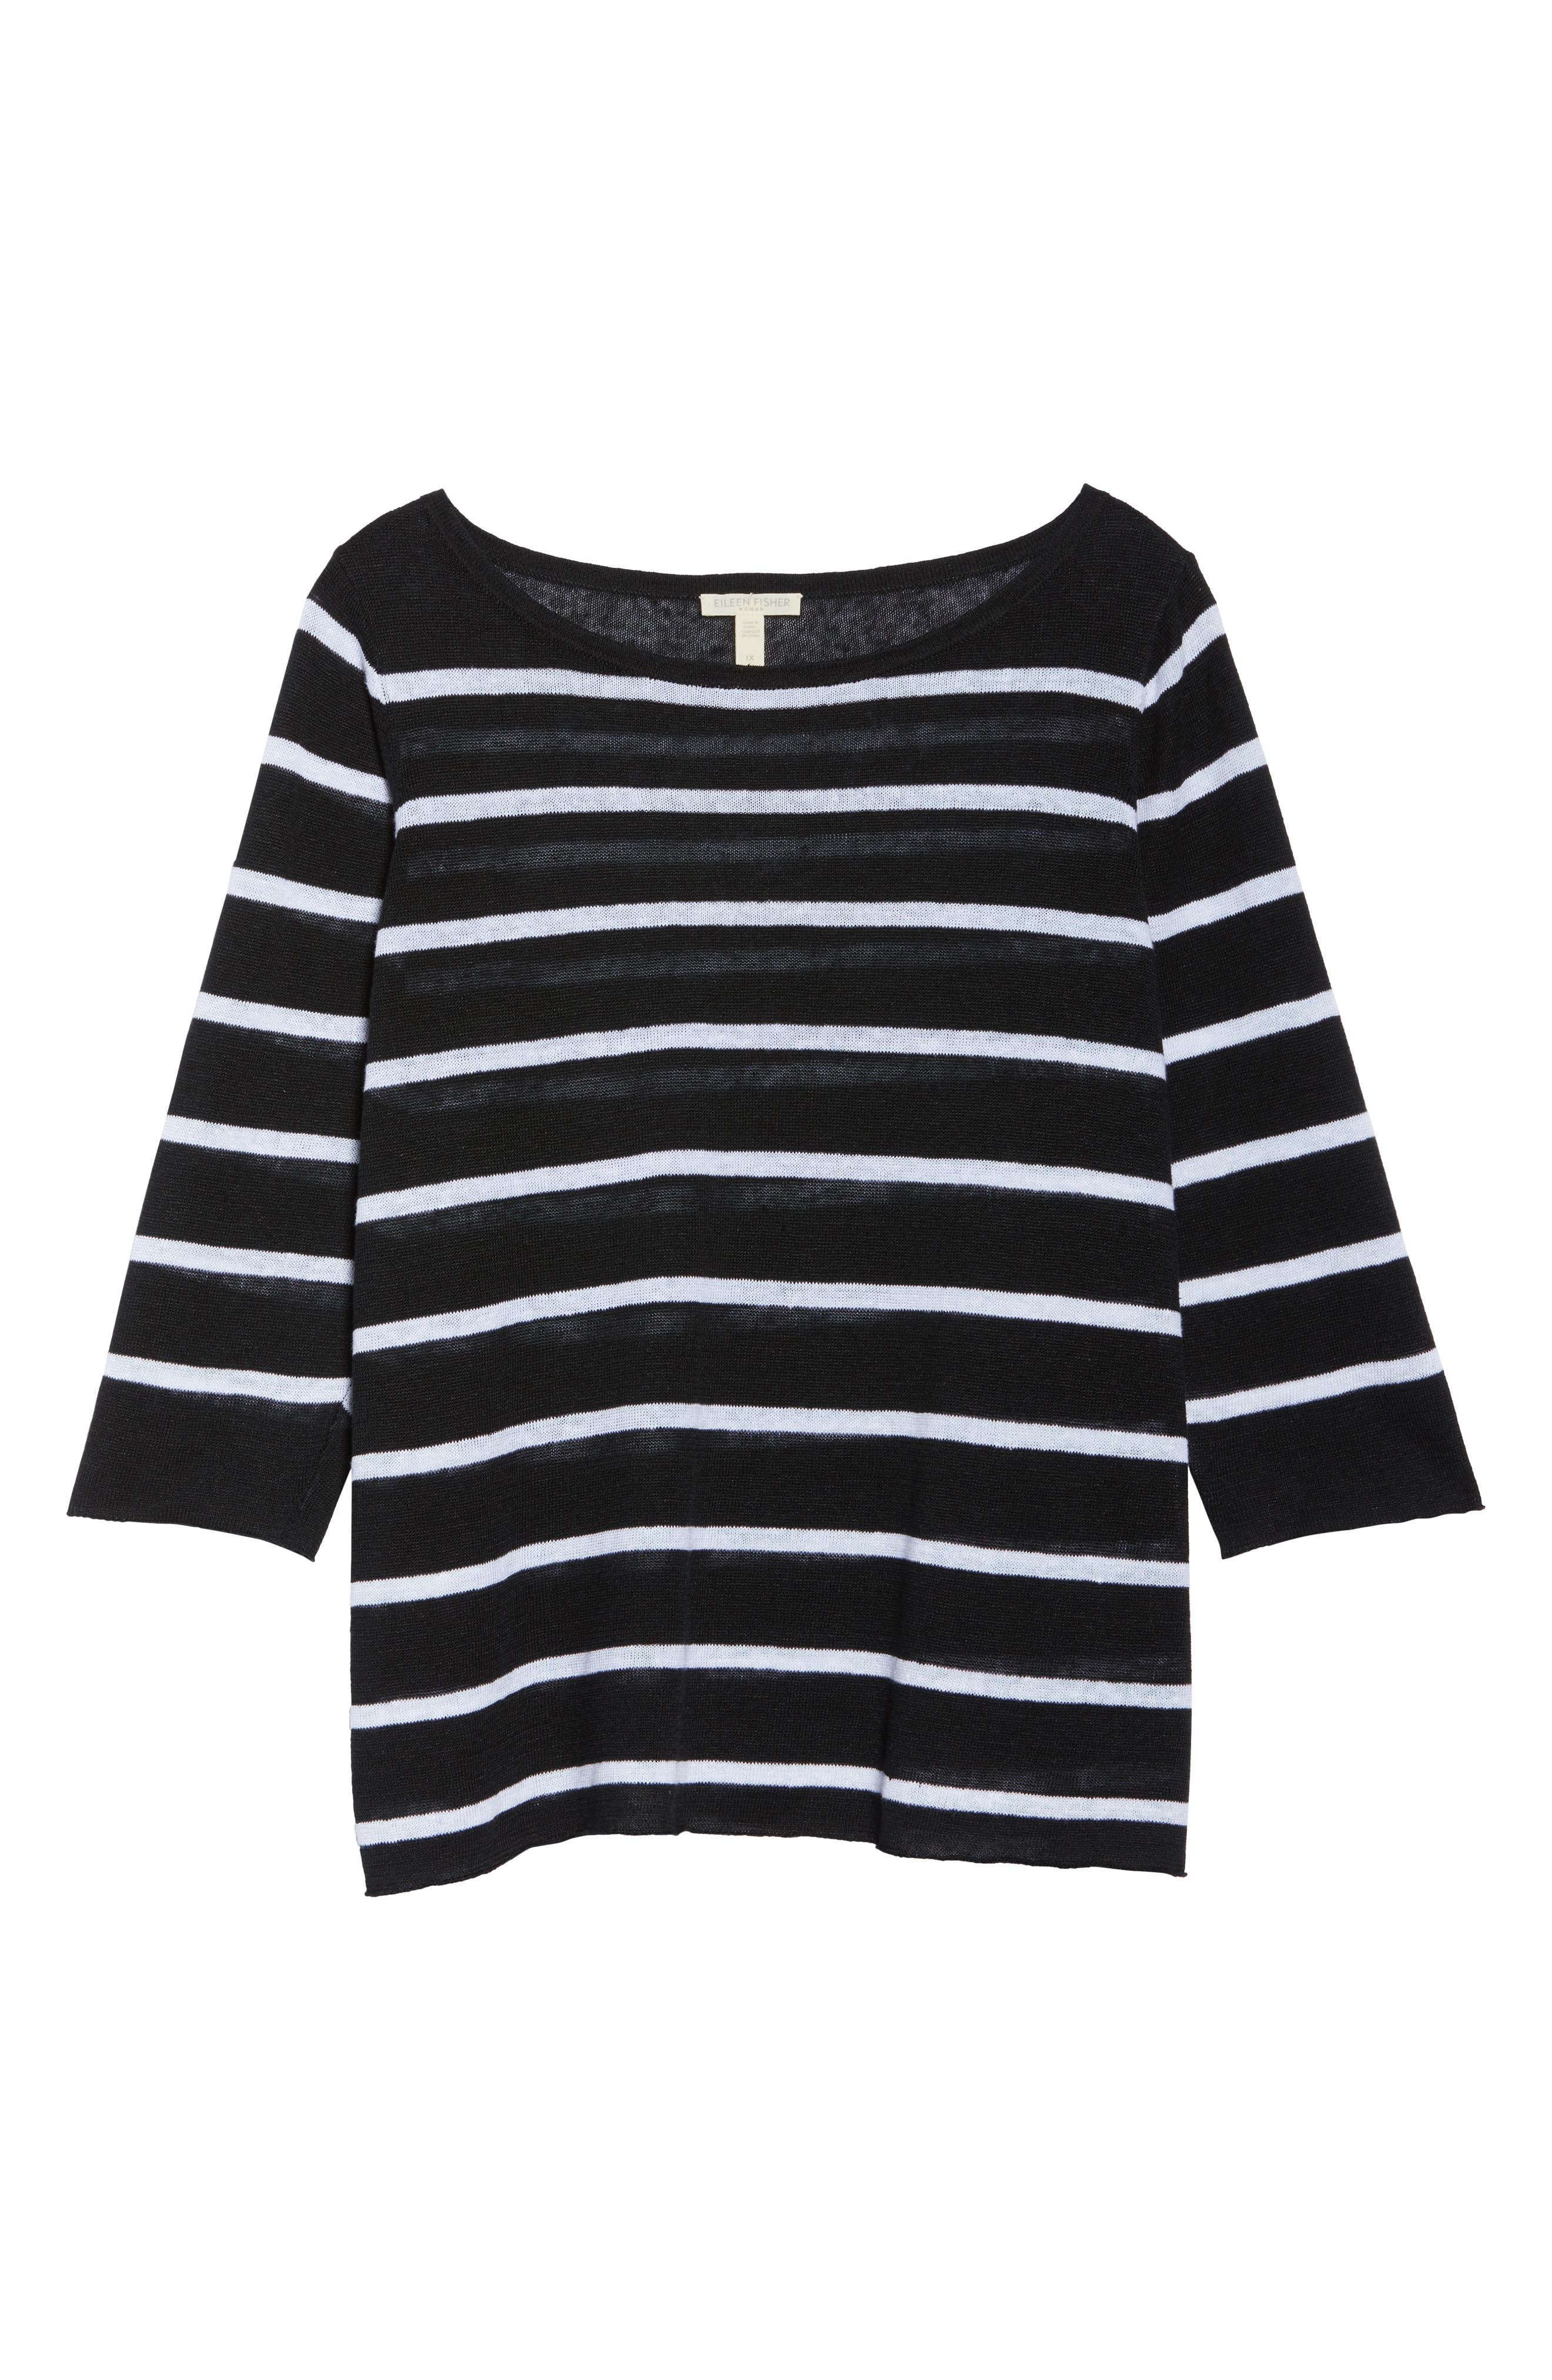 Bateau Neck Stripe Linen Top,                             Alternate thumbnail 7, color,                             Black/ White